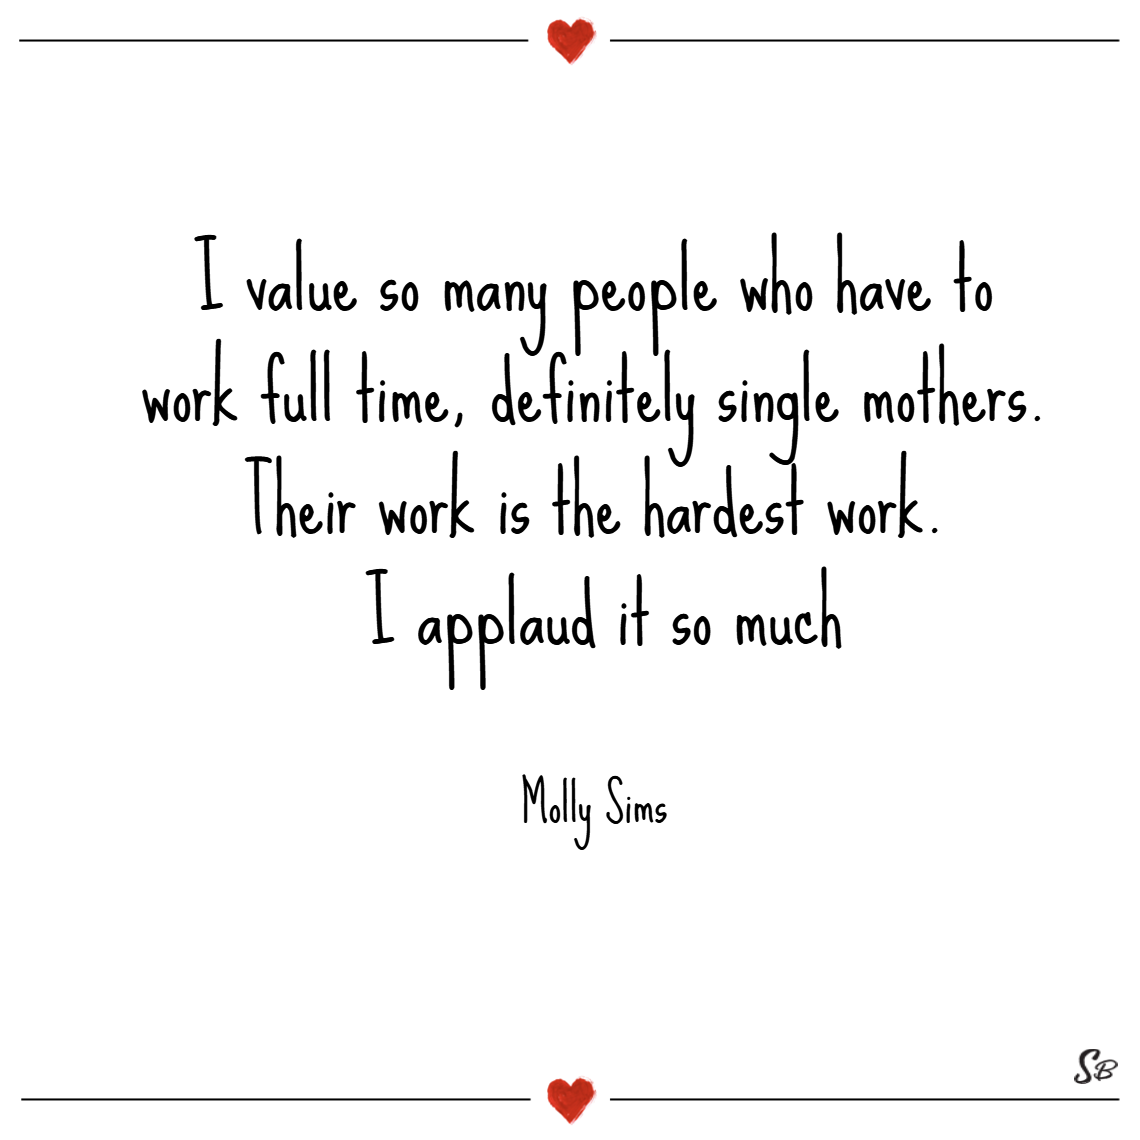 Value Of A Mother Quotes: 31 Single Mom Quotes On Struggle, Endurance And Love